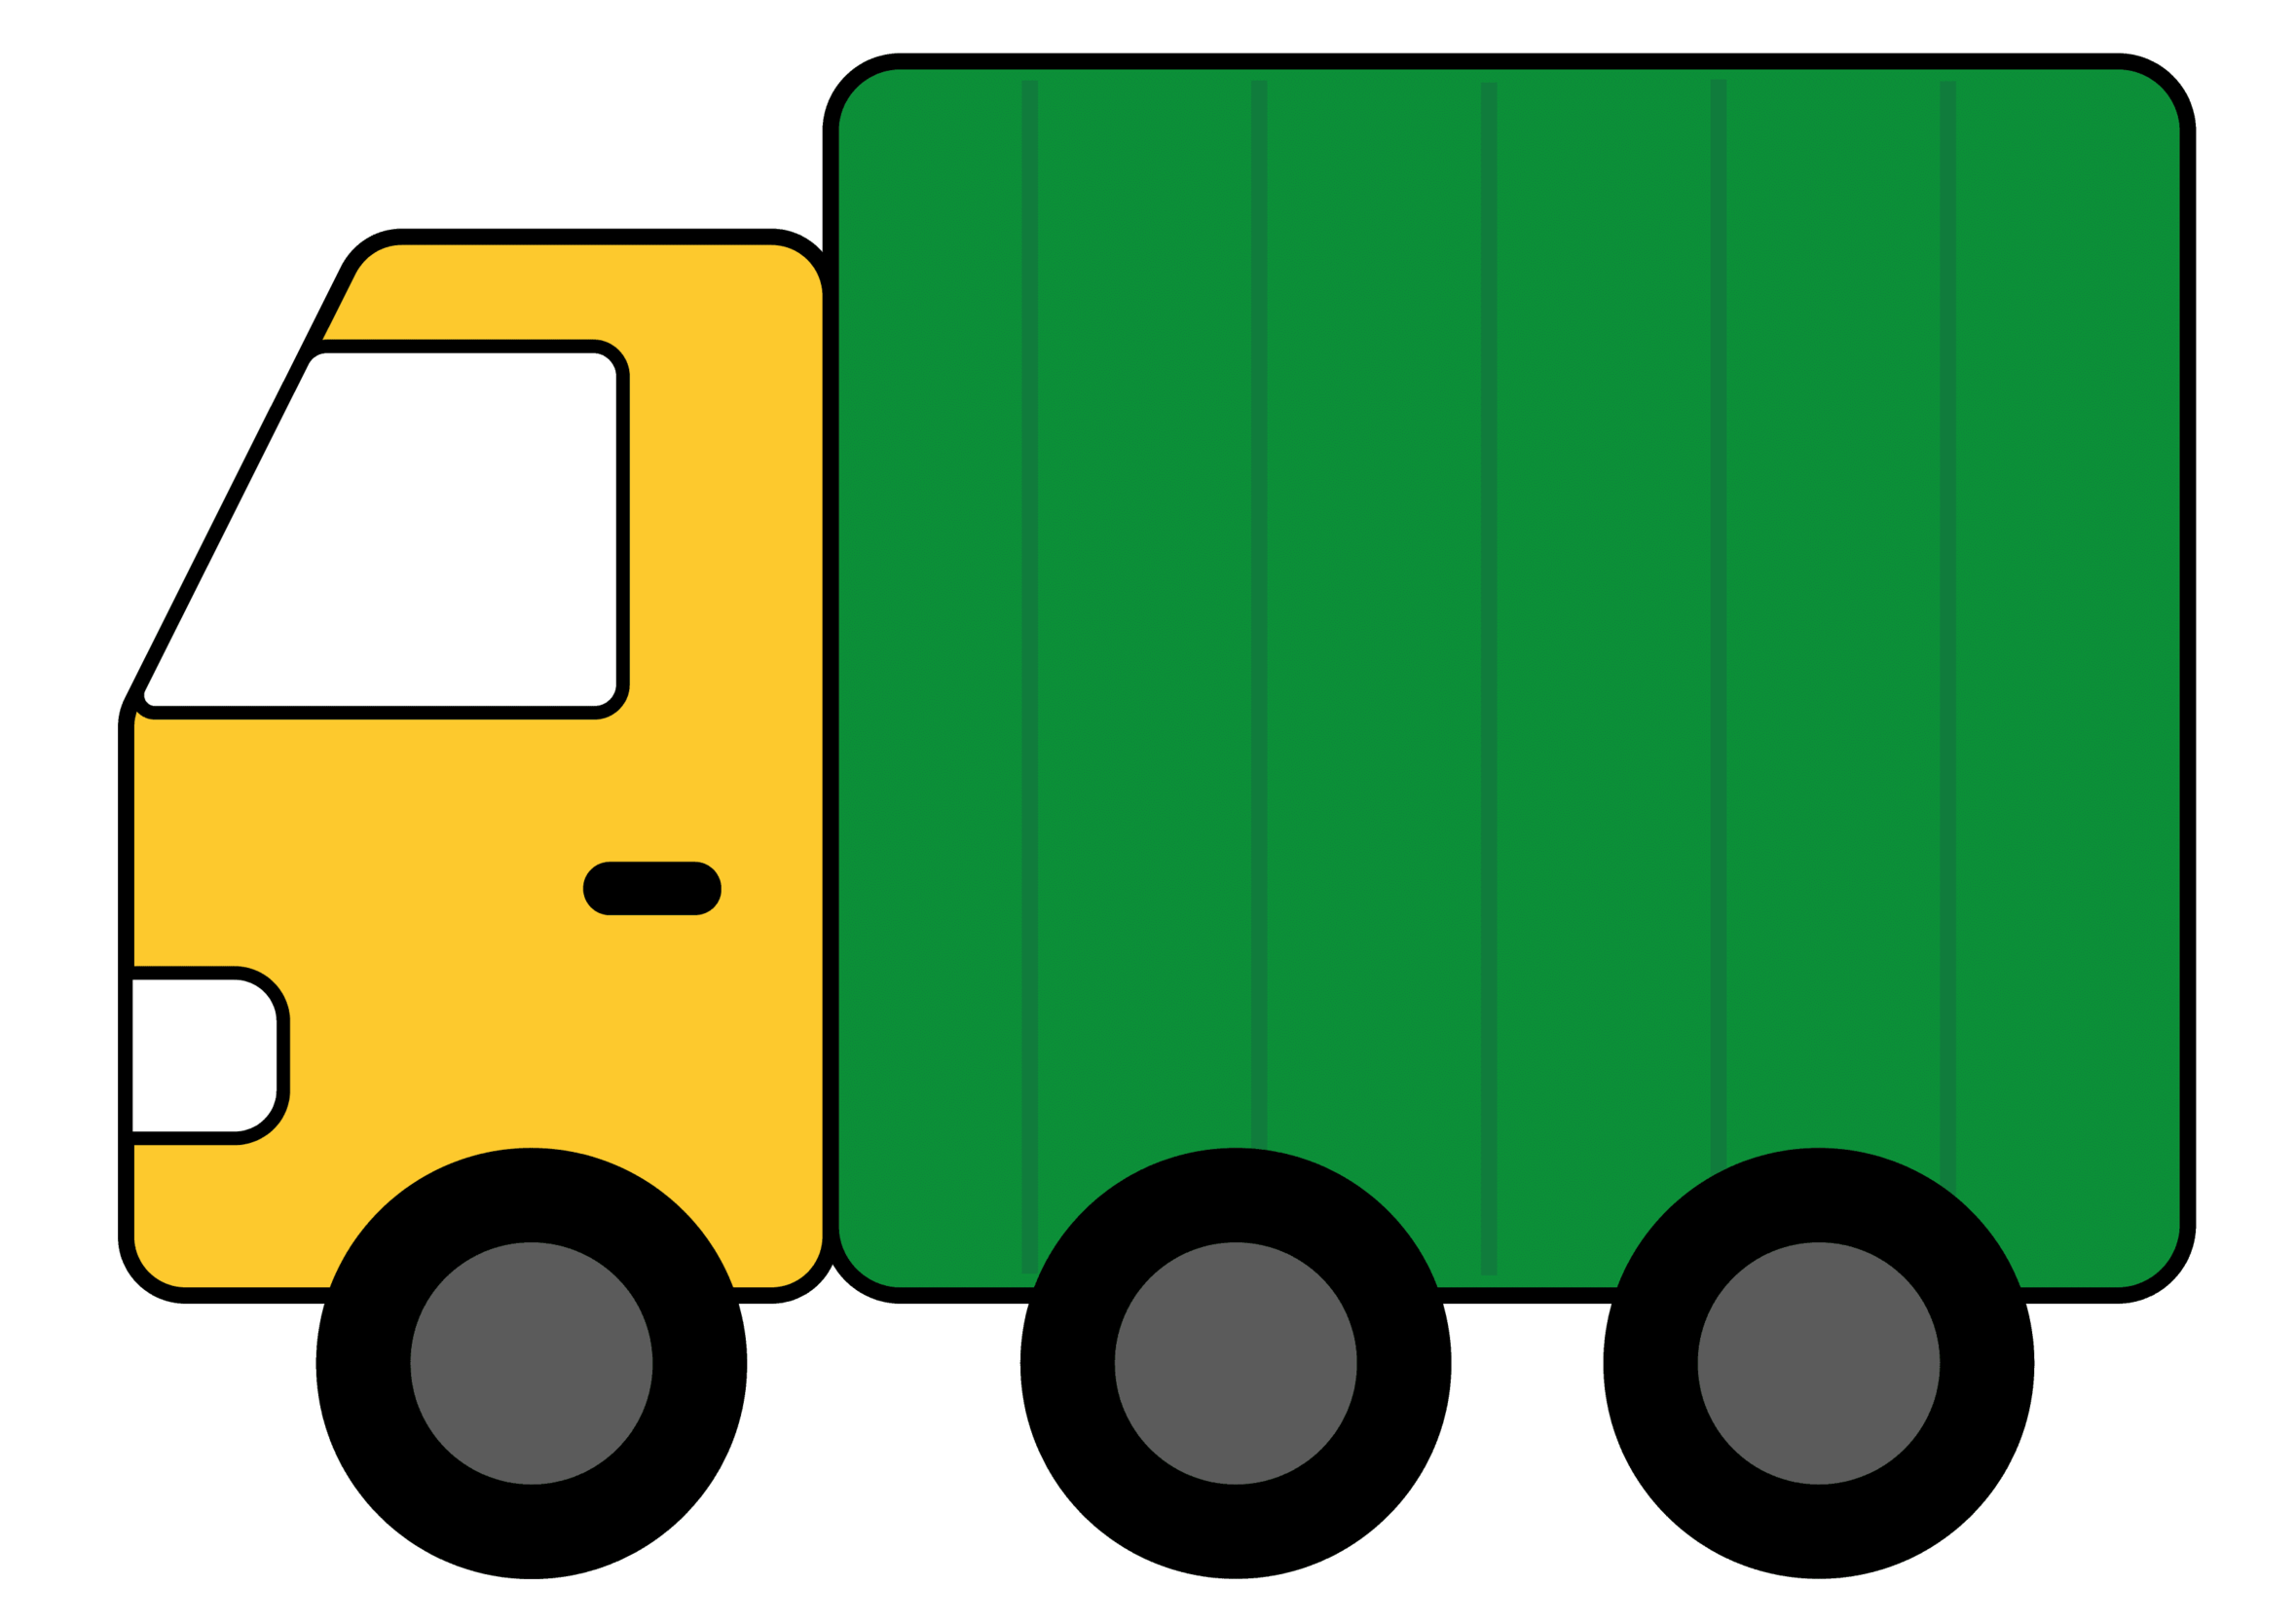 Toy clipart vehicle #5